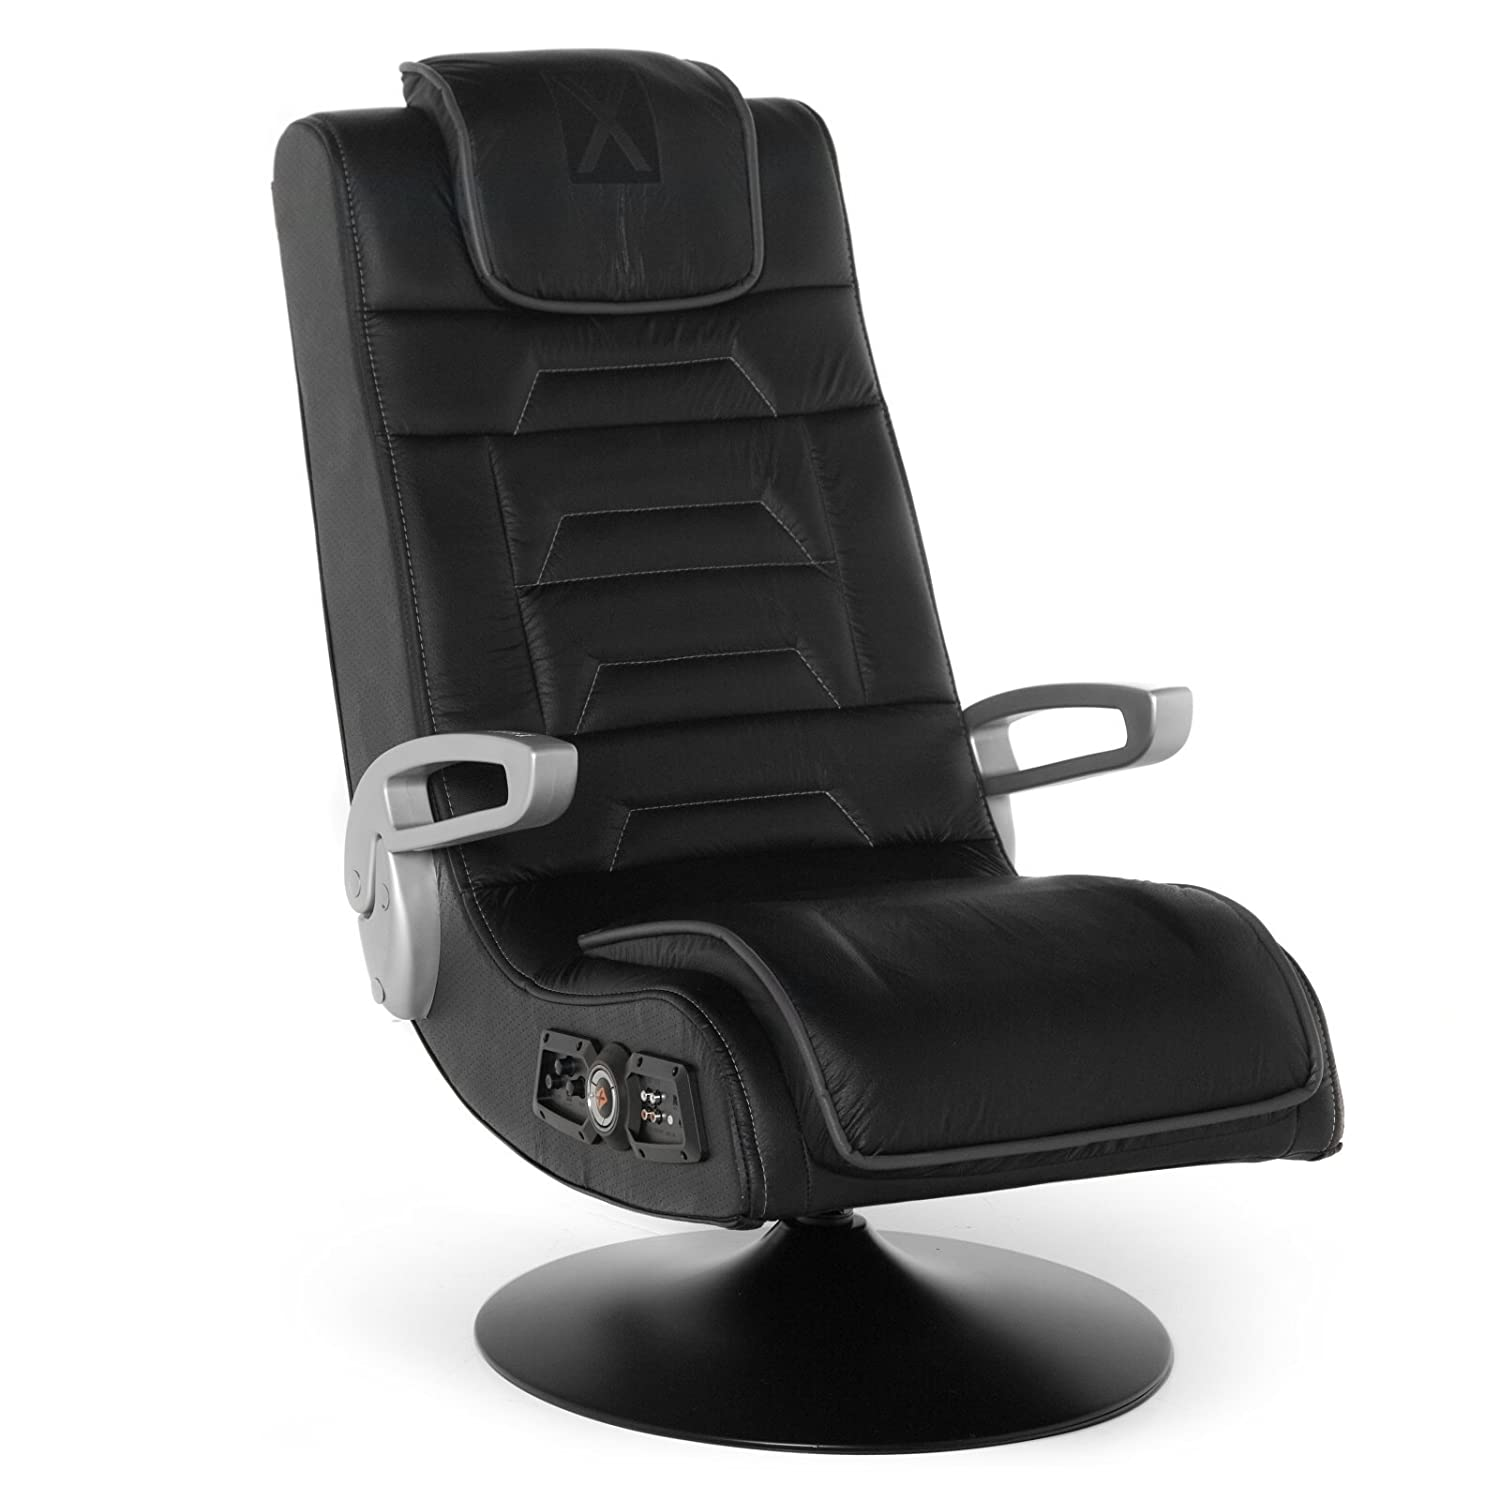 Game Chair Rocker X Rocker Pro Review Are Gaming Chairs Still A Thing